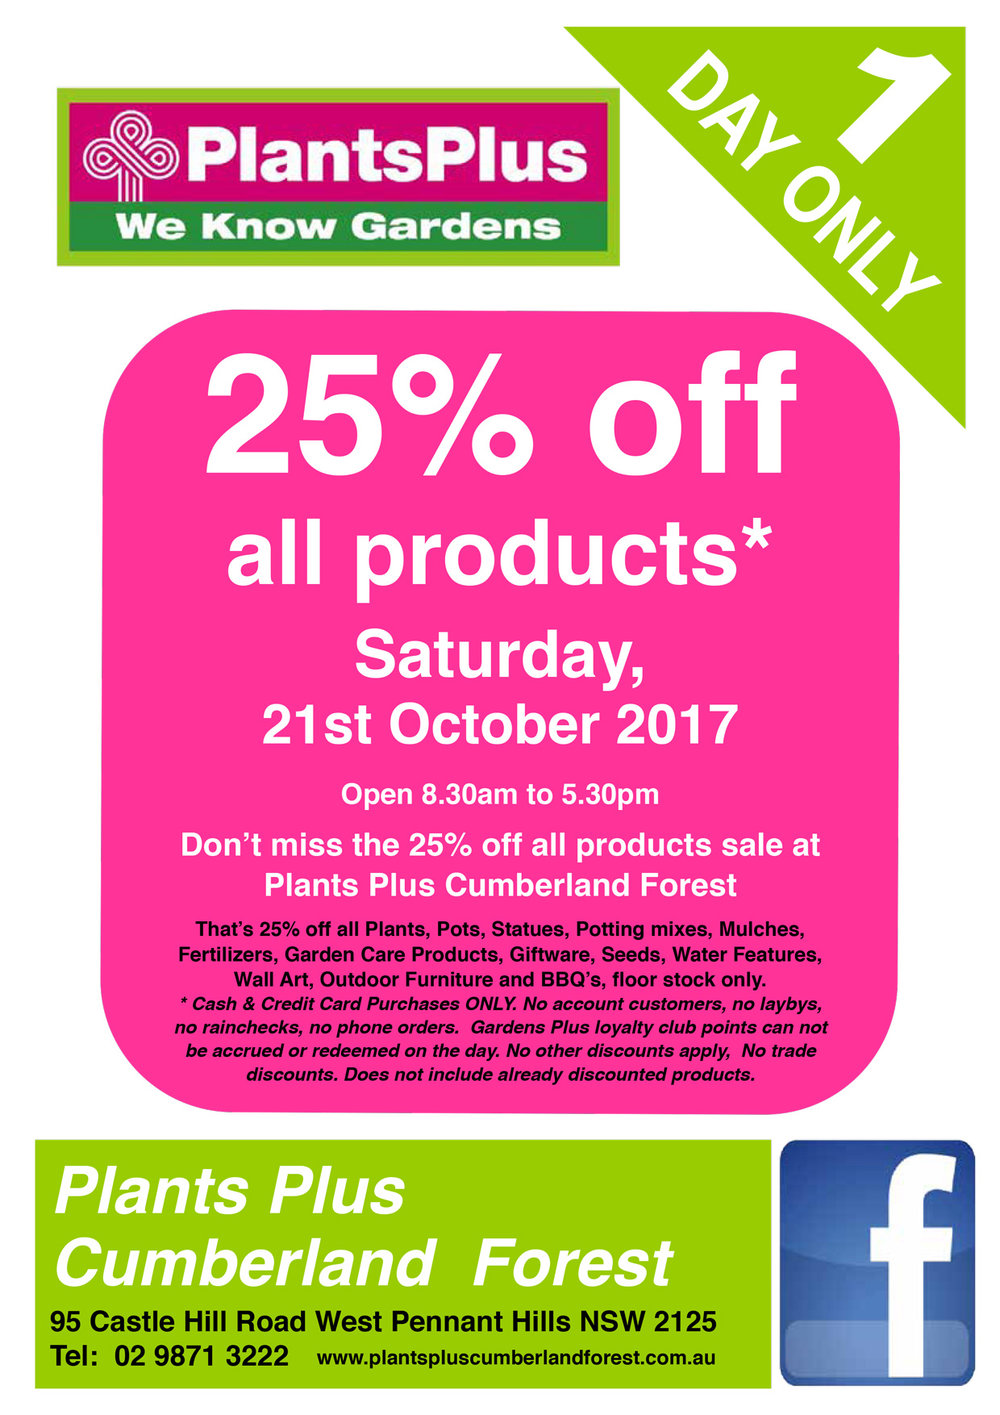 PlantsPlus_21_October_Sale.jpg